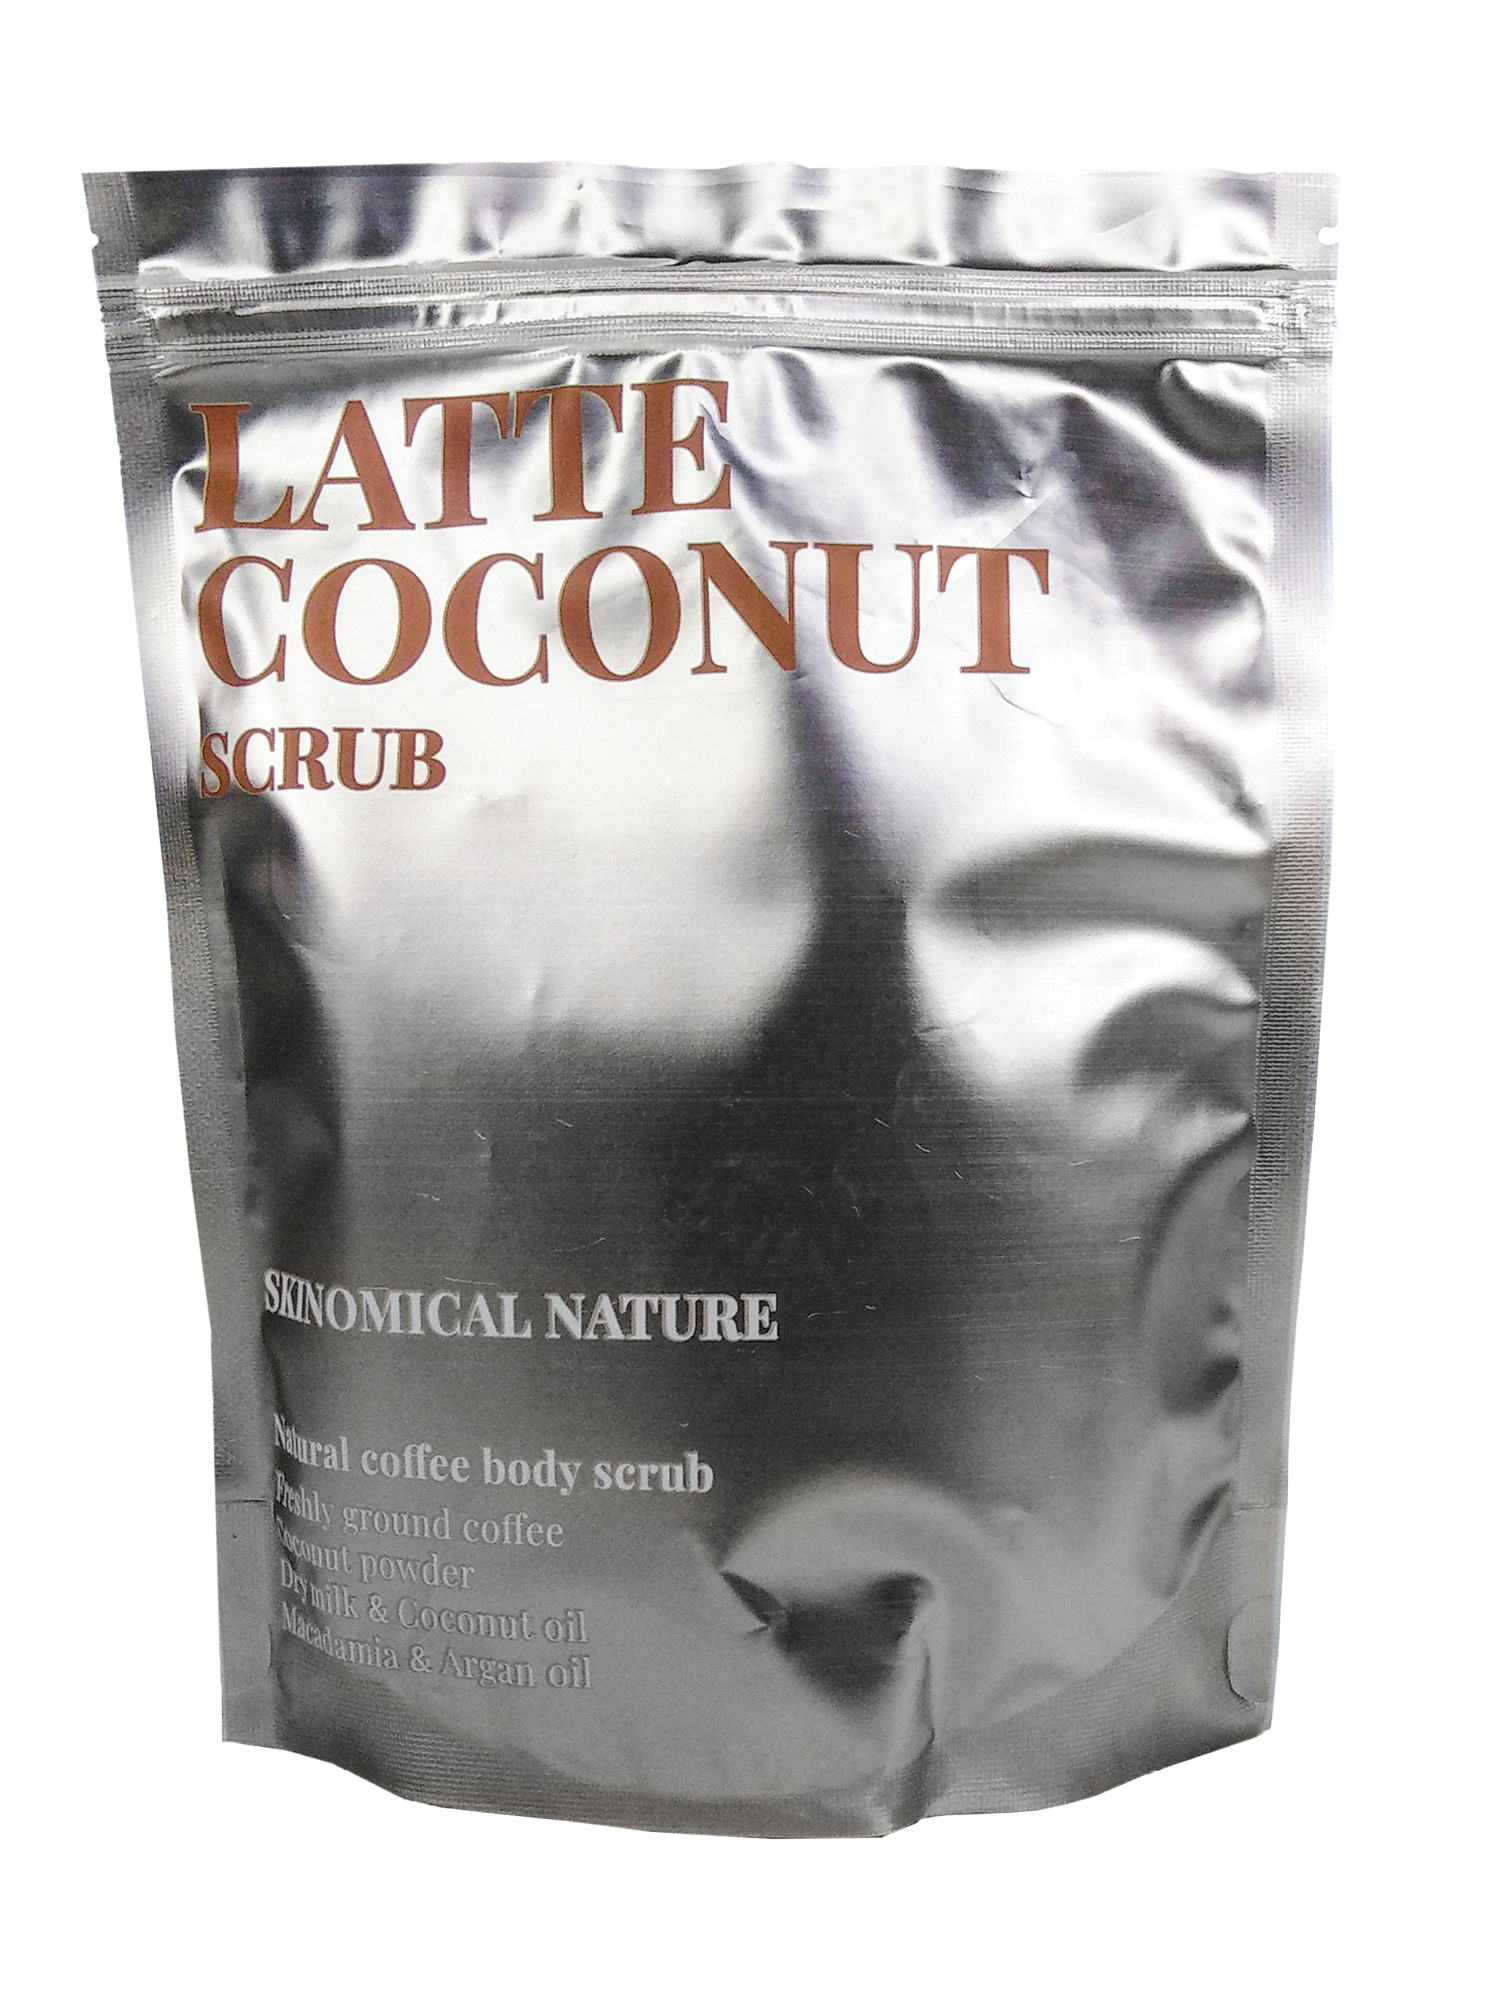 "Скрабы для тела Кофейный скраб для тела ""Латте и кокос"" Skinomical Nature Latte Coconut Scrub, 250гр uploads_photos__SKINOMICAL__790195-_SKINOMICAL__Кофейный_скраб_для_тела__Латте_и_кокос__Skinomic.png"